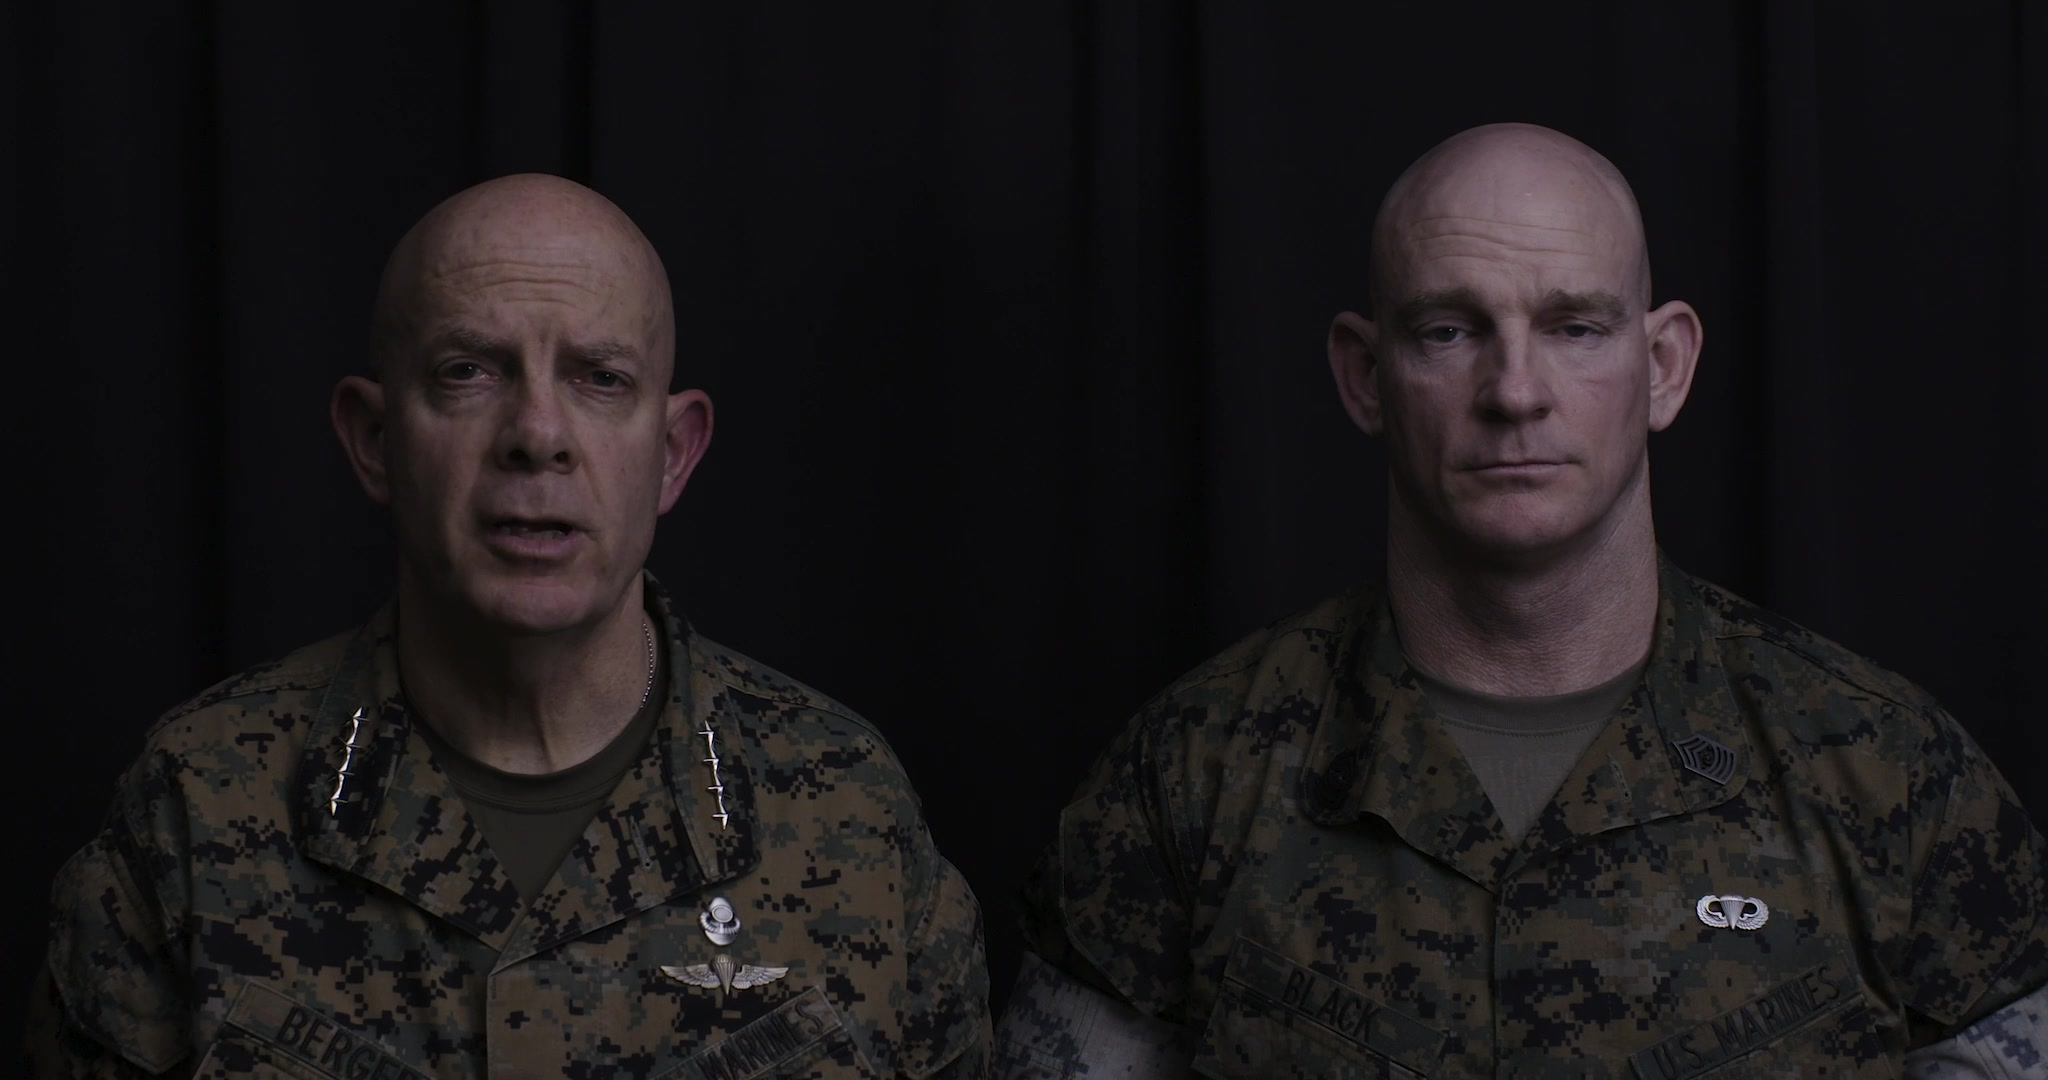 The Commandant and Sergeant Major of the Marine Corps deliver a message to the force regarding COVID19, restrictions on graduations at the Marine Corps Recruit Depots, Officer Candidate School and The Basic School, as well as guidance on travel and PCS. (U.S. Marine Corps video by Staff Sgt. James R. Skelton)